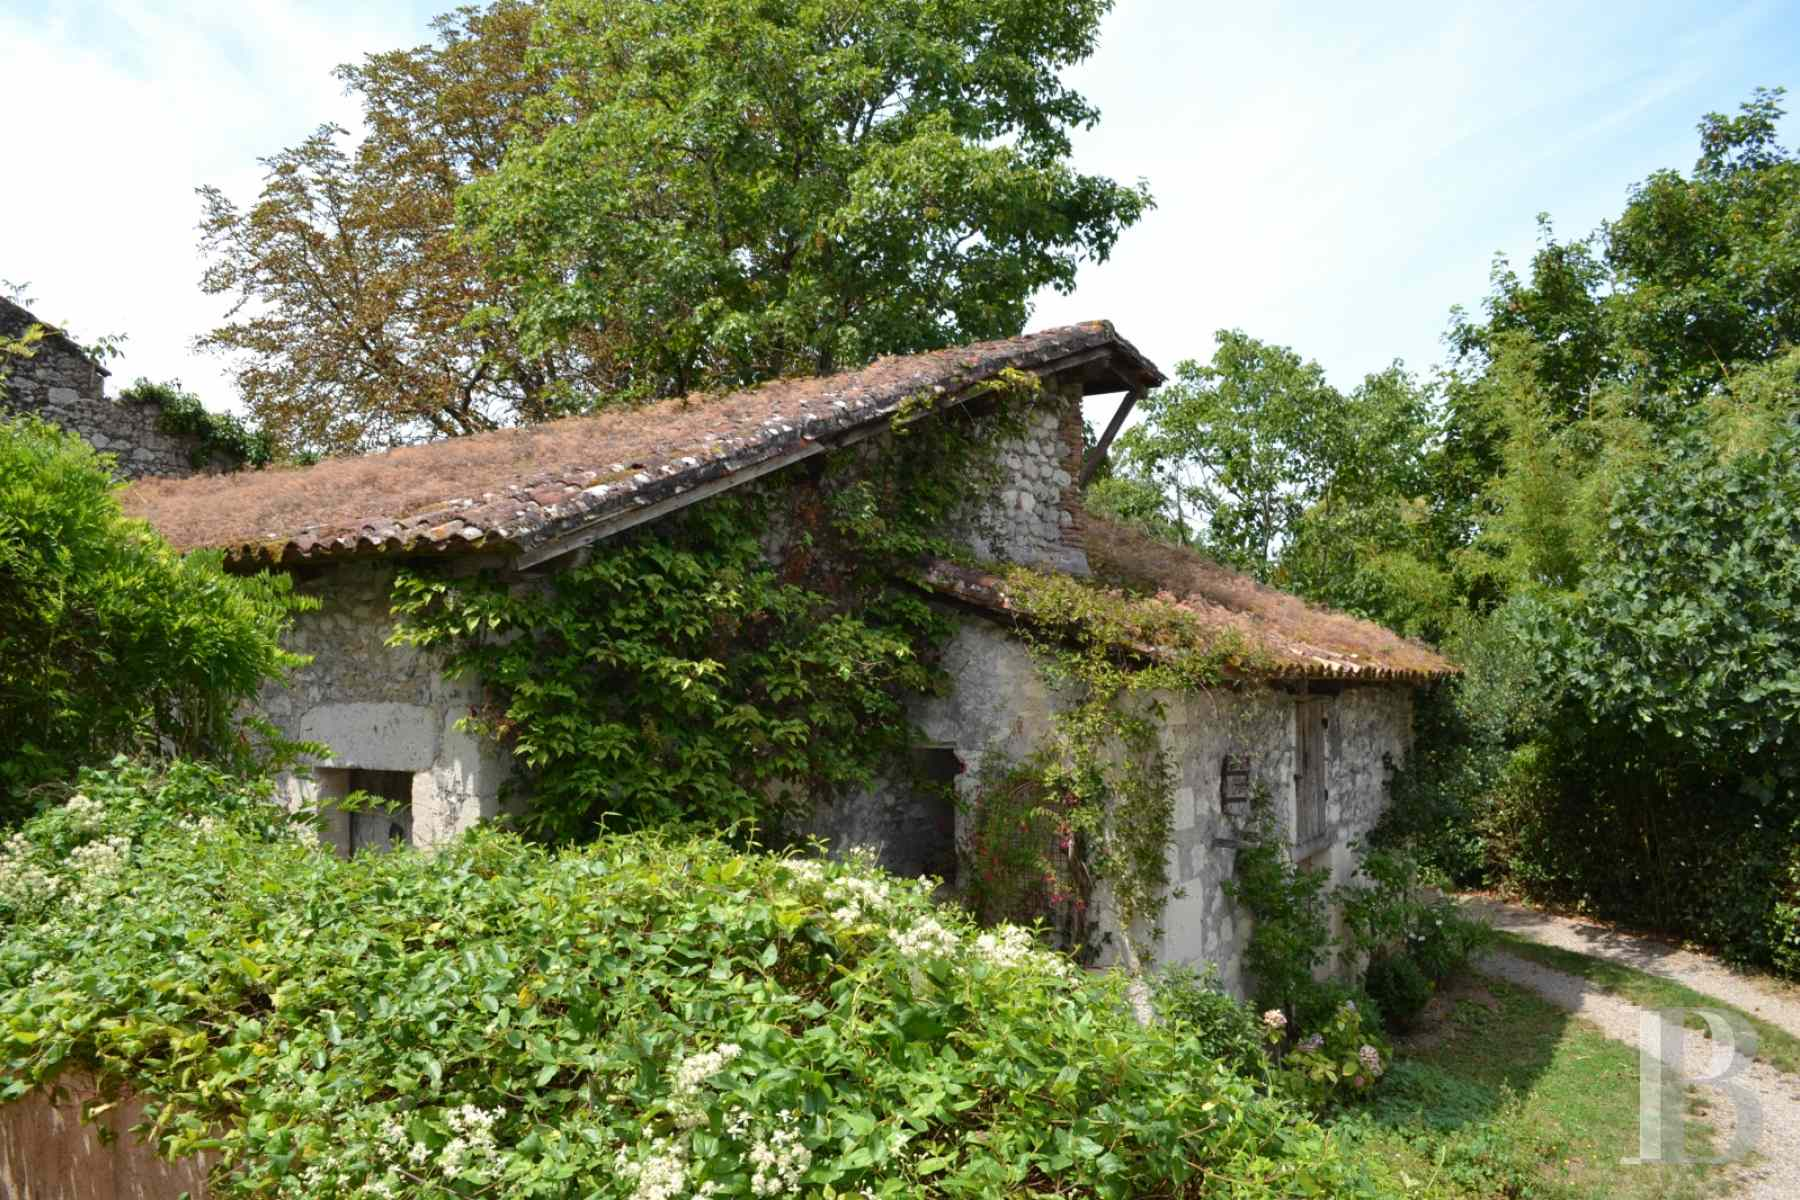 property for sale France aquitaine property 18th - 22 zoom